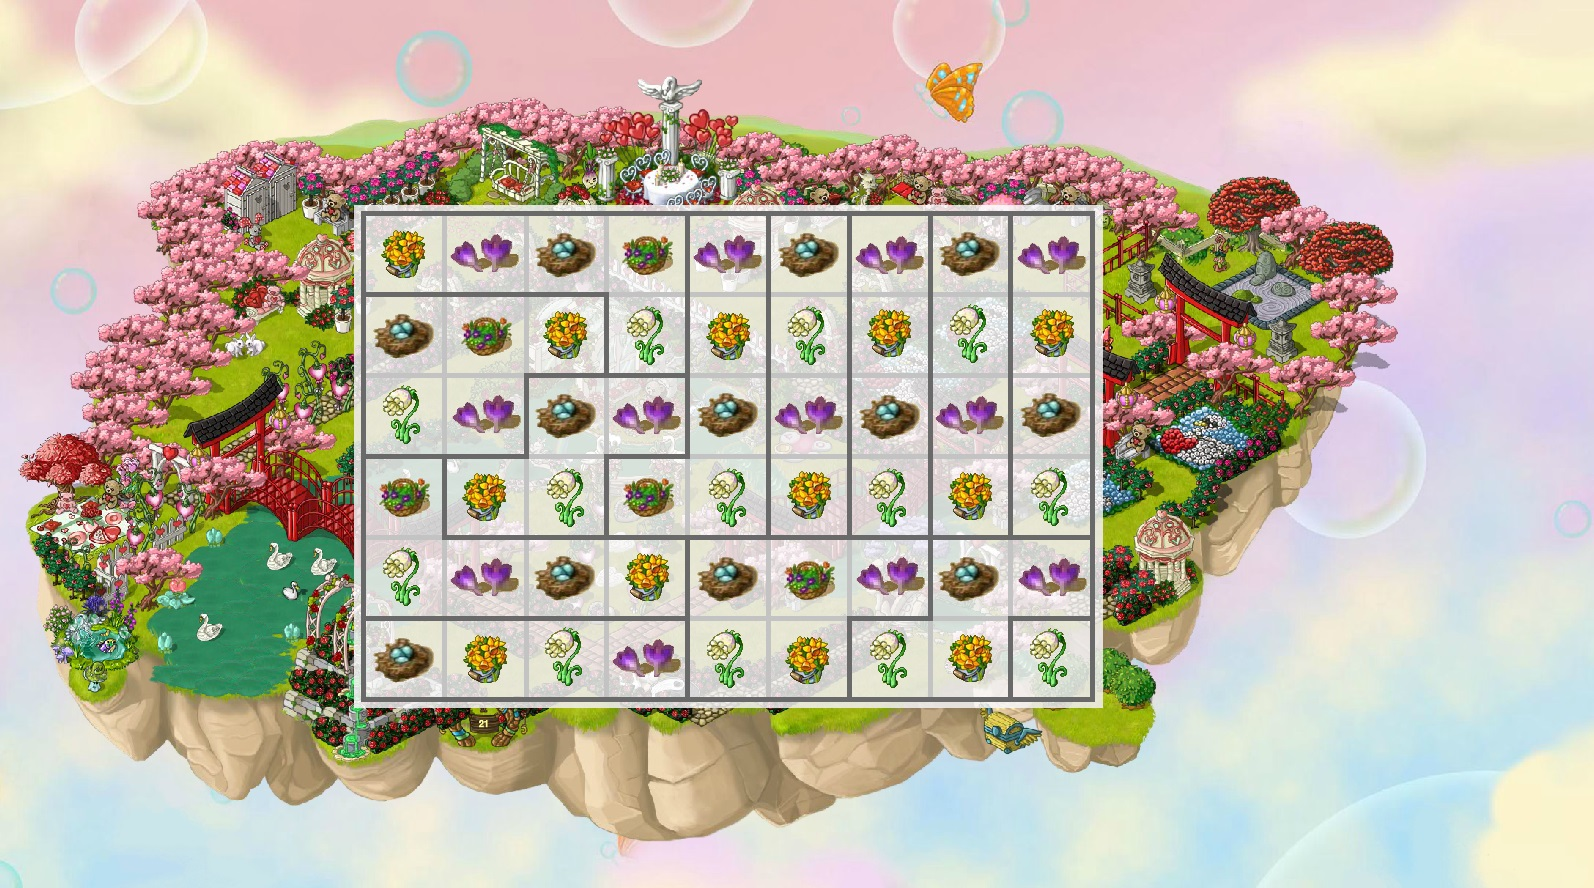 Name:  Gift Box Puzzler - Welcoming Spring 2019 - answer.jpg Views: 4 Size:  537.3 KB